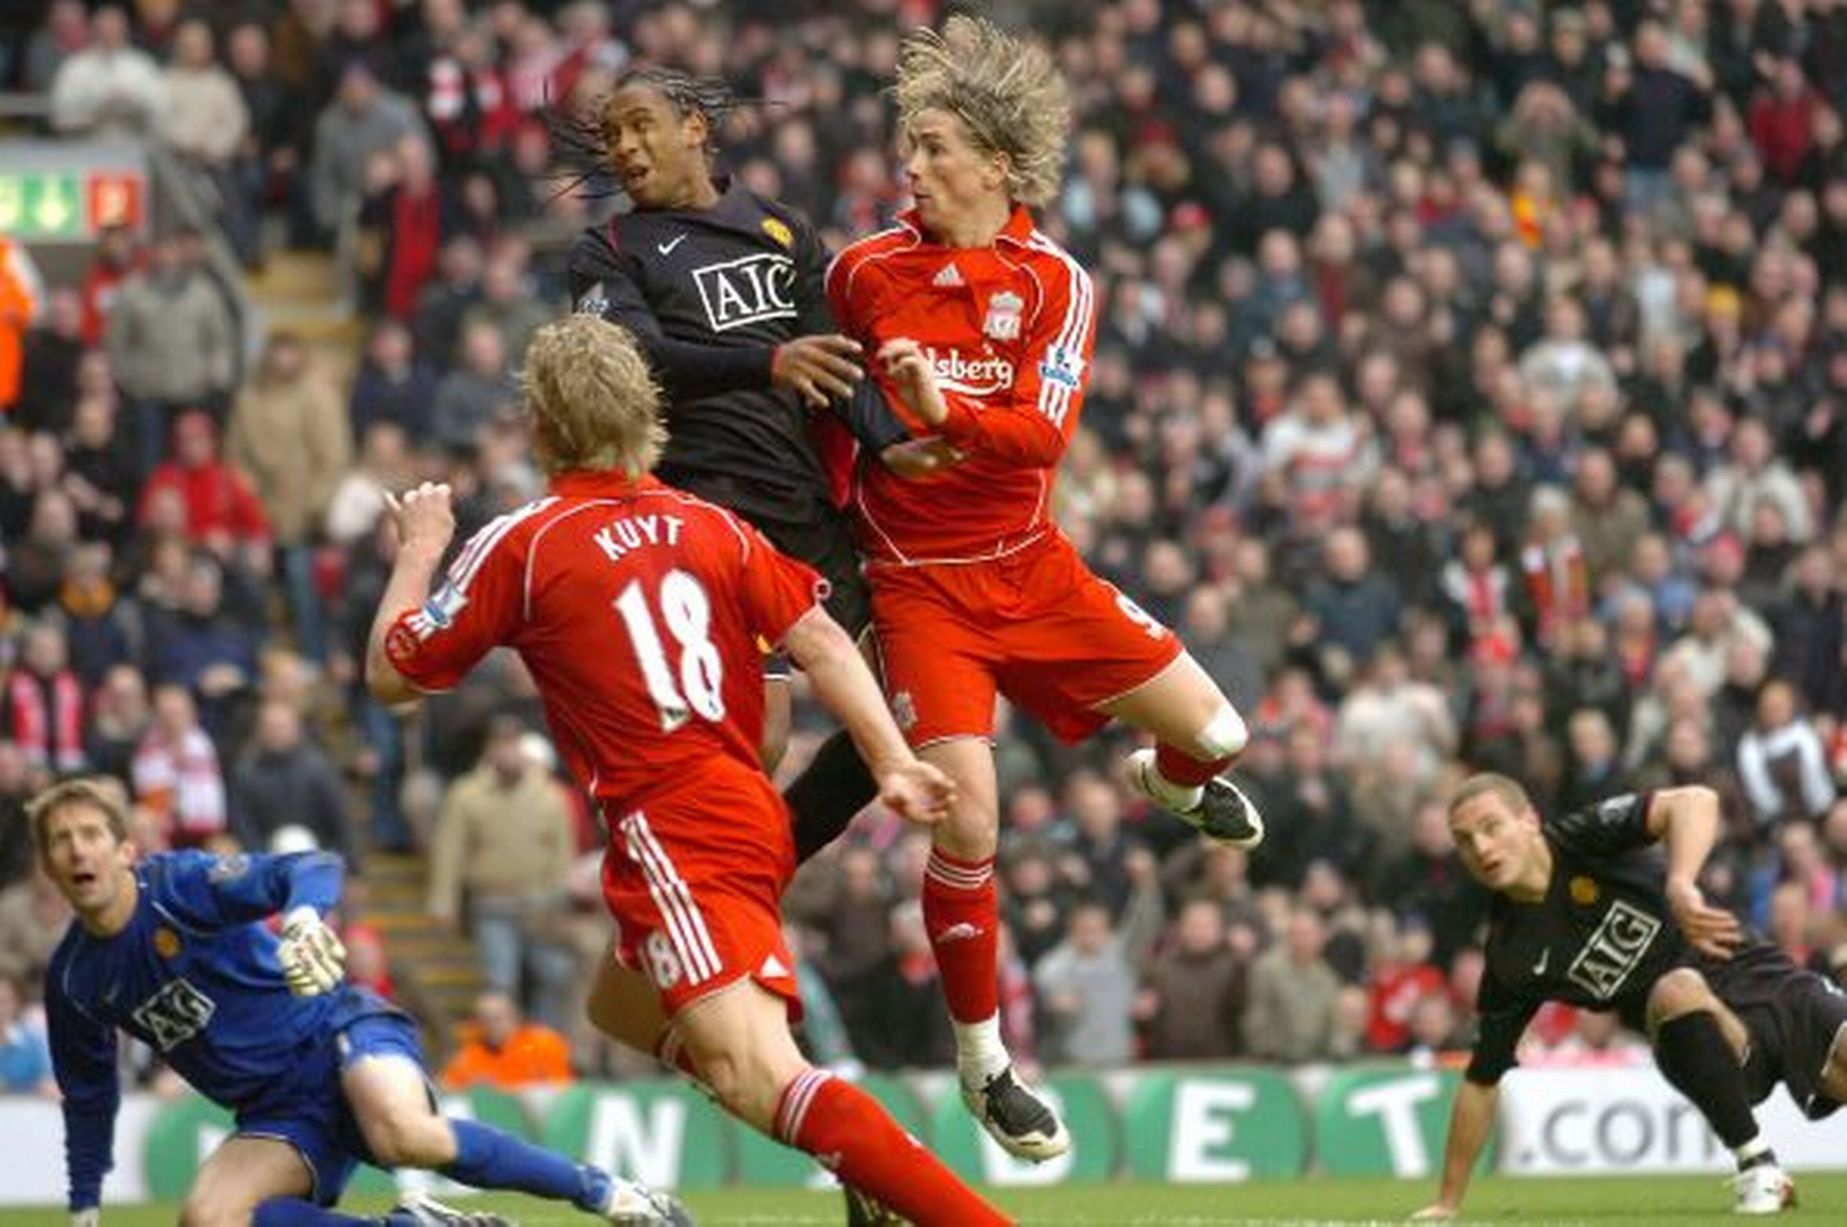 Manchester United V Liverpool A Fierce Rivalry In Pictures Manchester United Manchester United Images Manchester